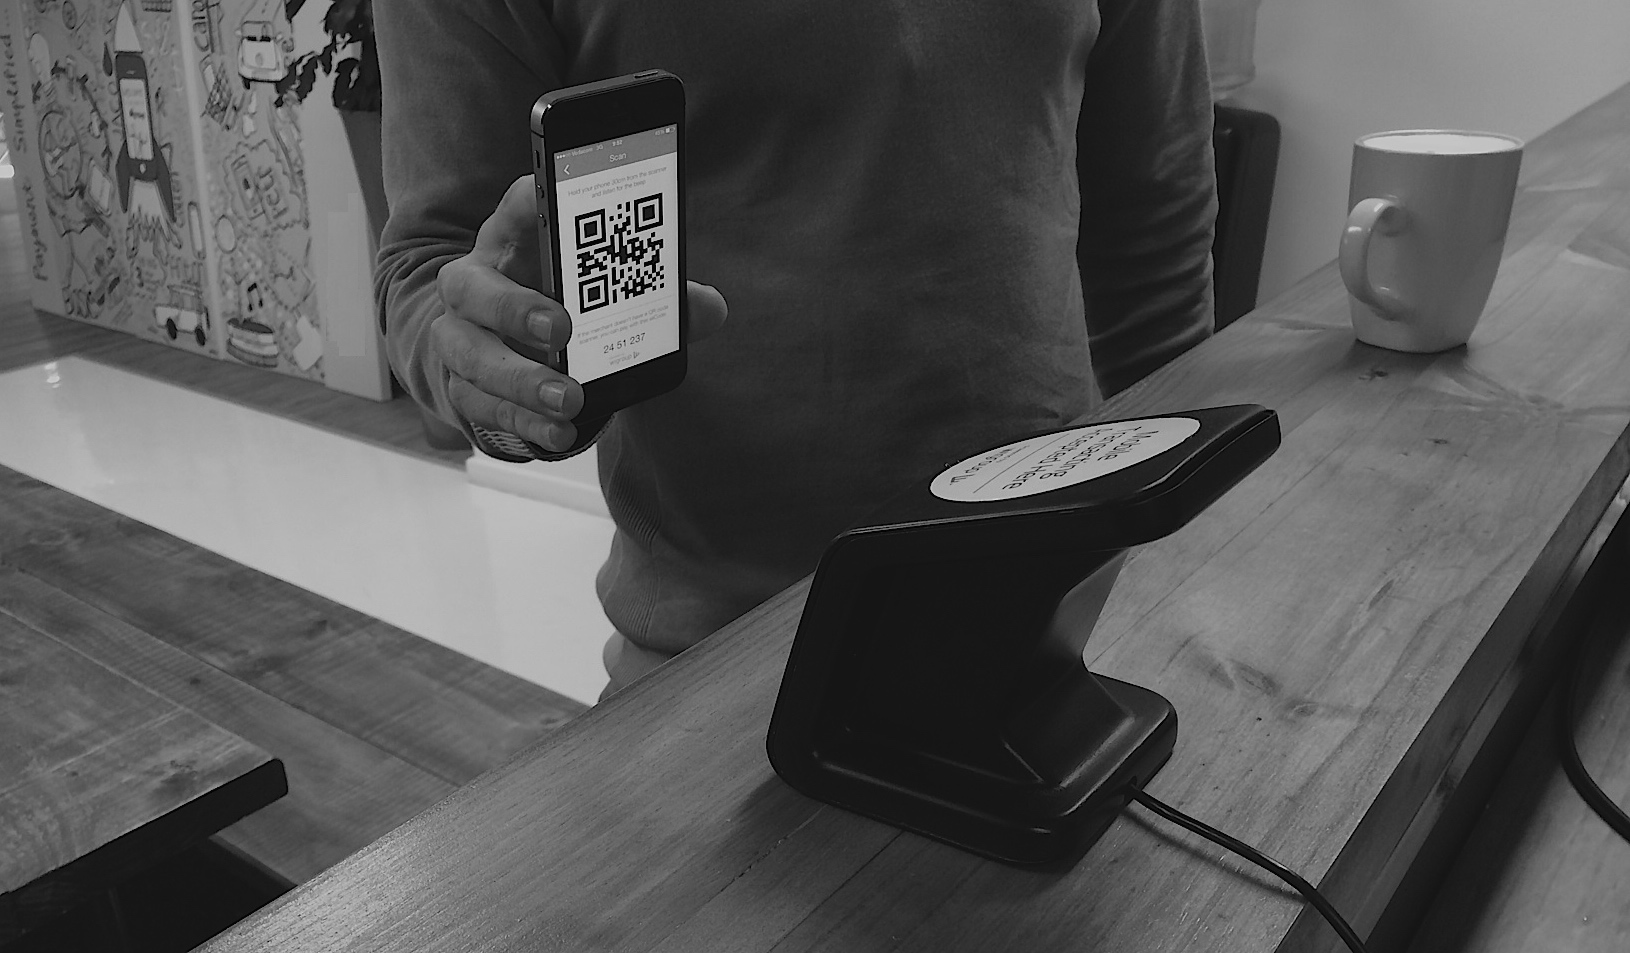 Above: TuYu mobile wallet user pays for a coffee using a unique QR code.